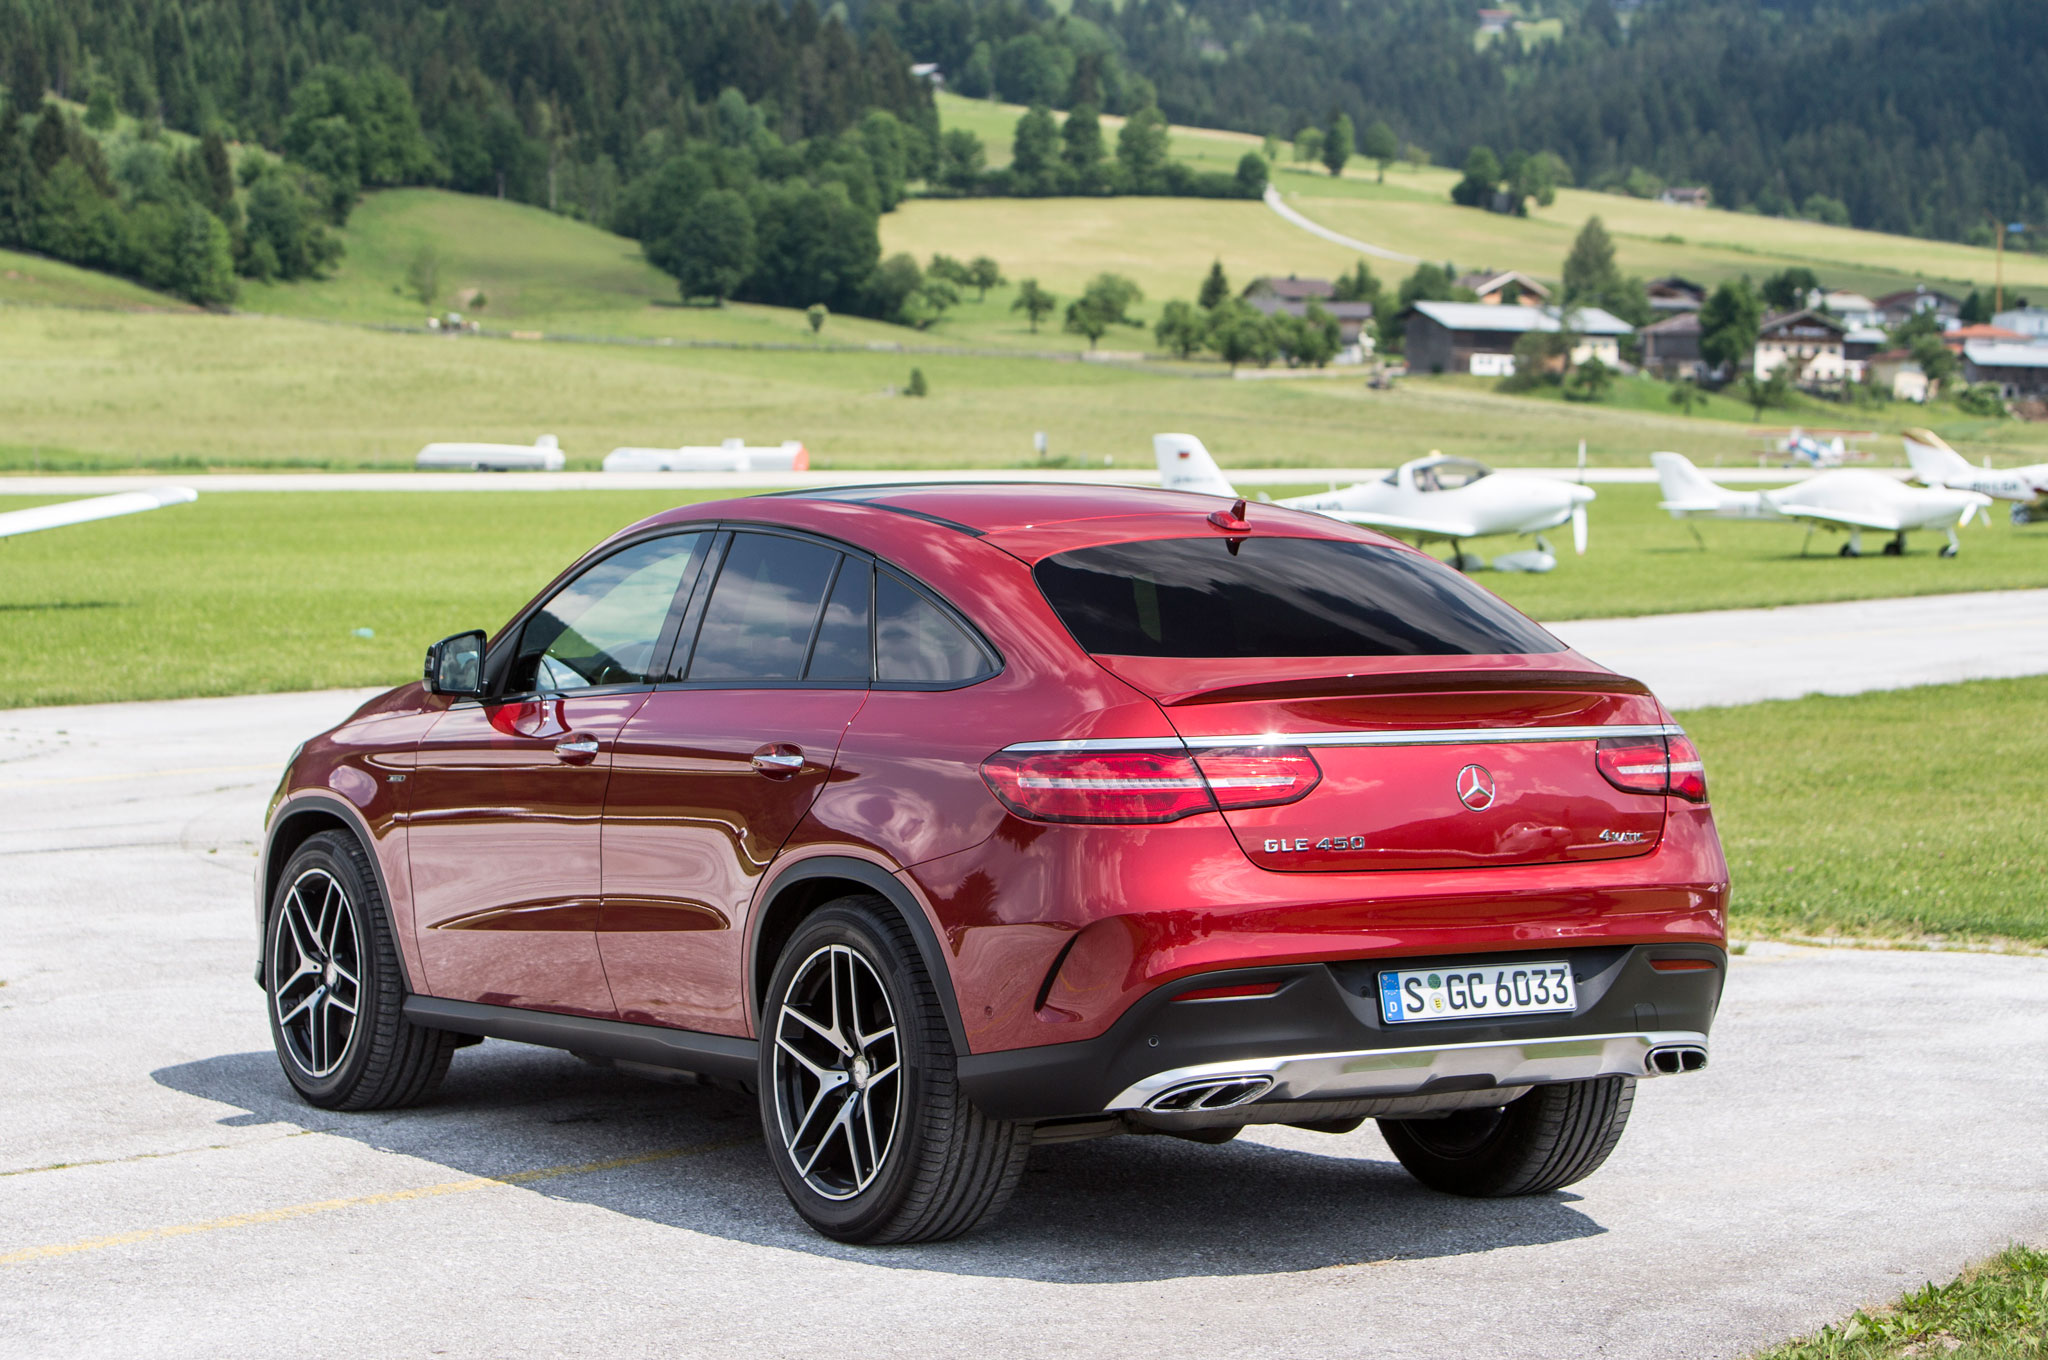 http://st.automobilemag.com/uploads/sites/11/2015/06/2016-Mercedes-Benz-GLE450-AMG-4Matic-Coupe-rear-three-quarter-03.jpg